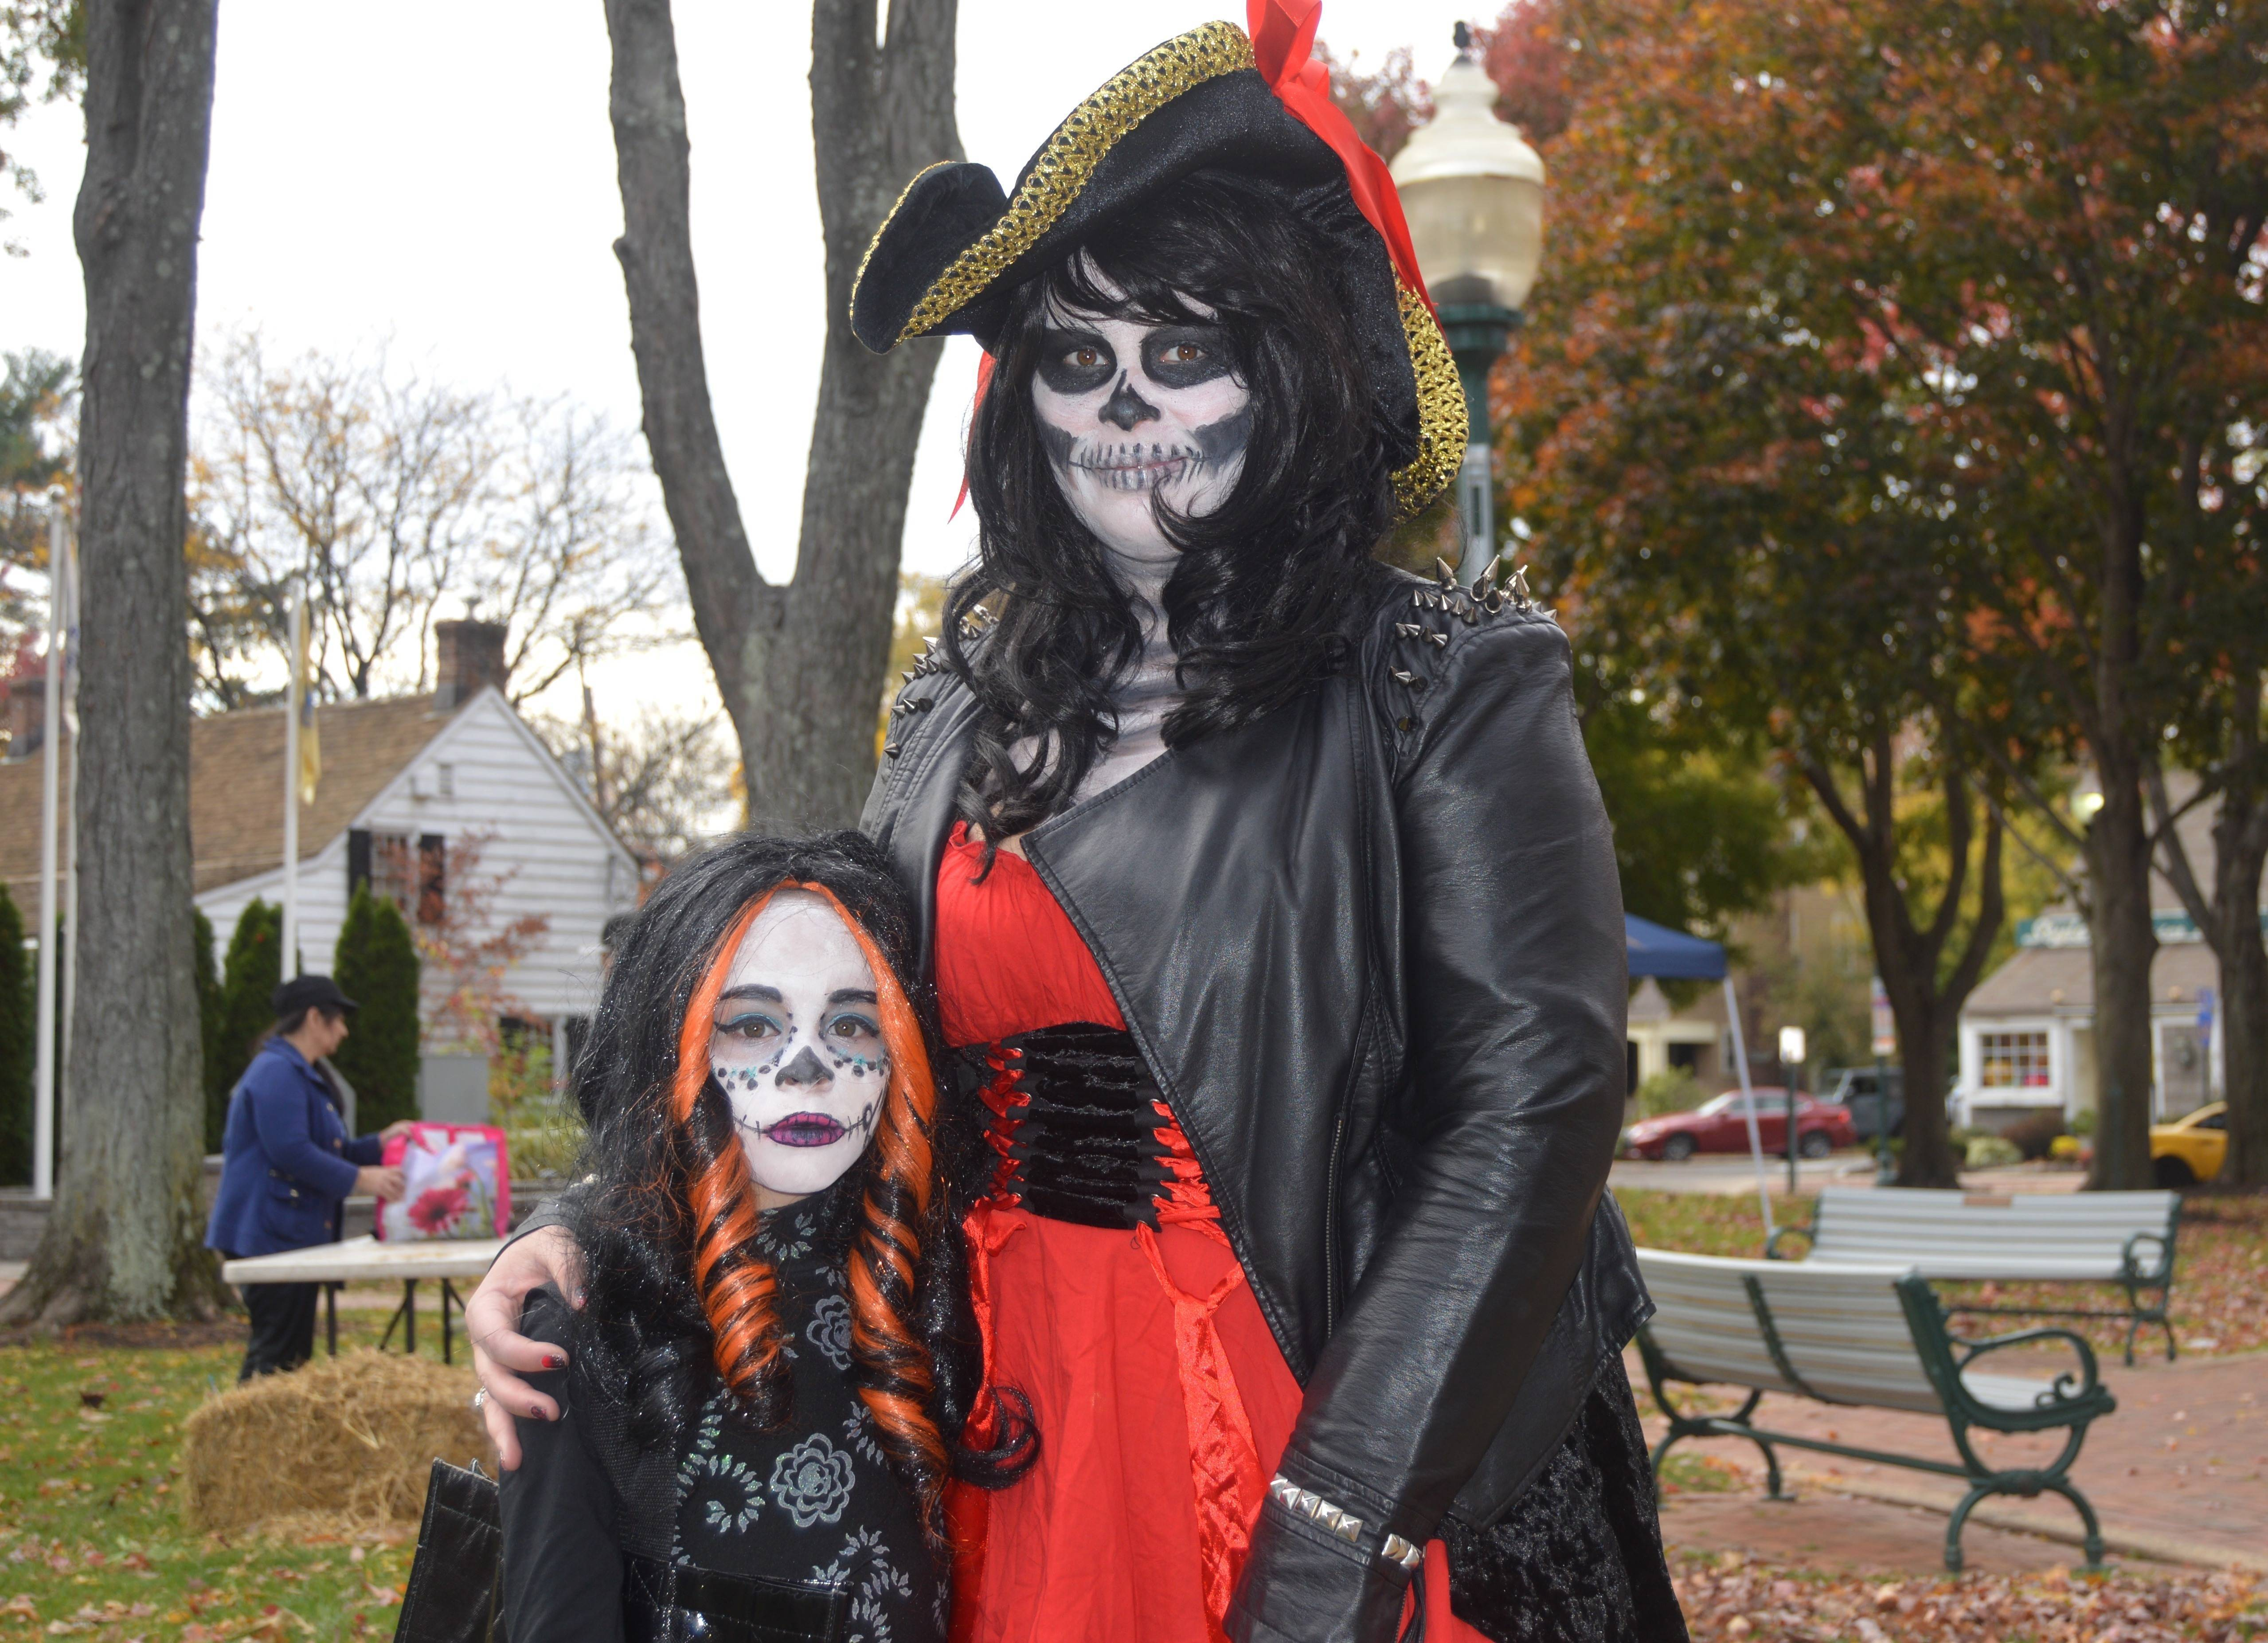 f148d57c263a0871c2d1_Trunk_or_Treat_--_Skeletons.JPG